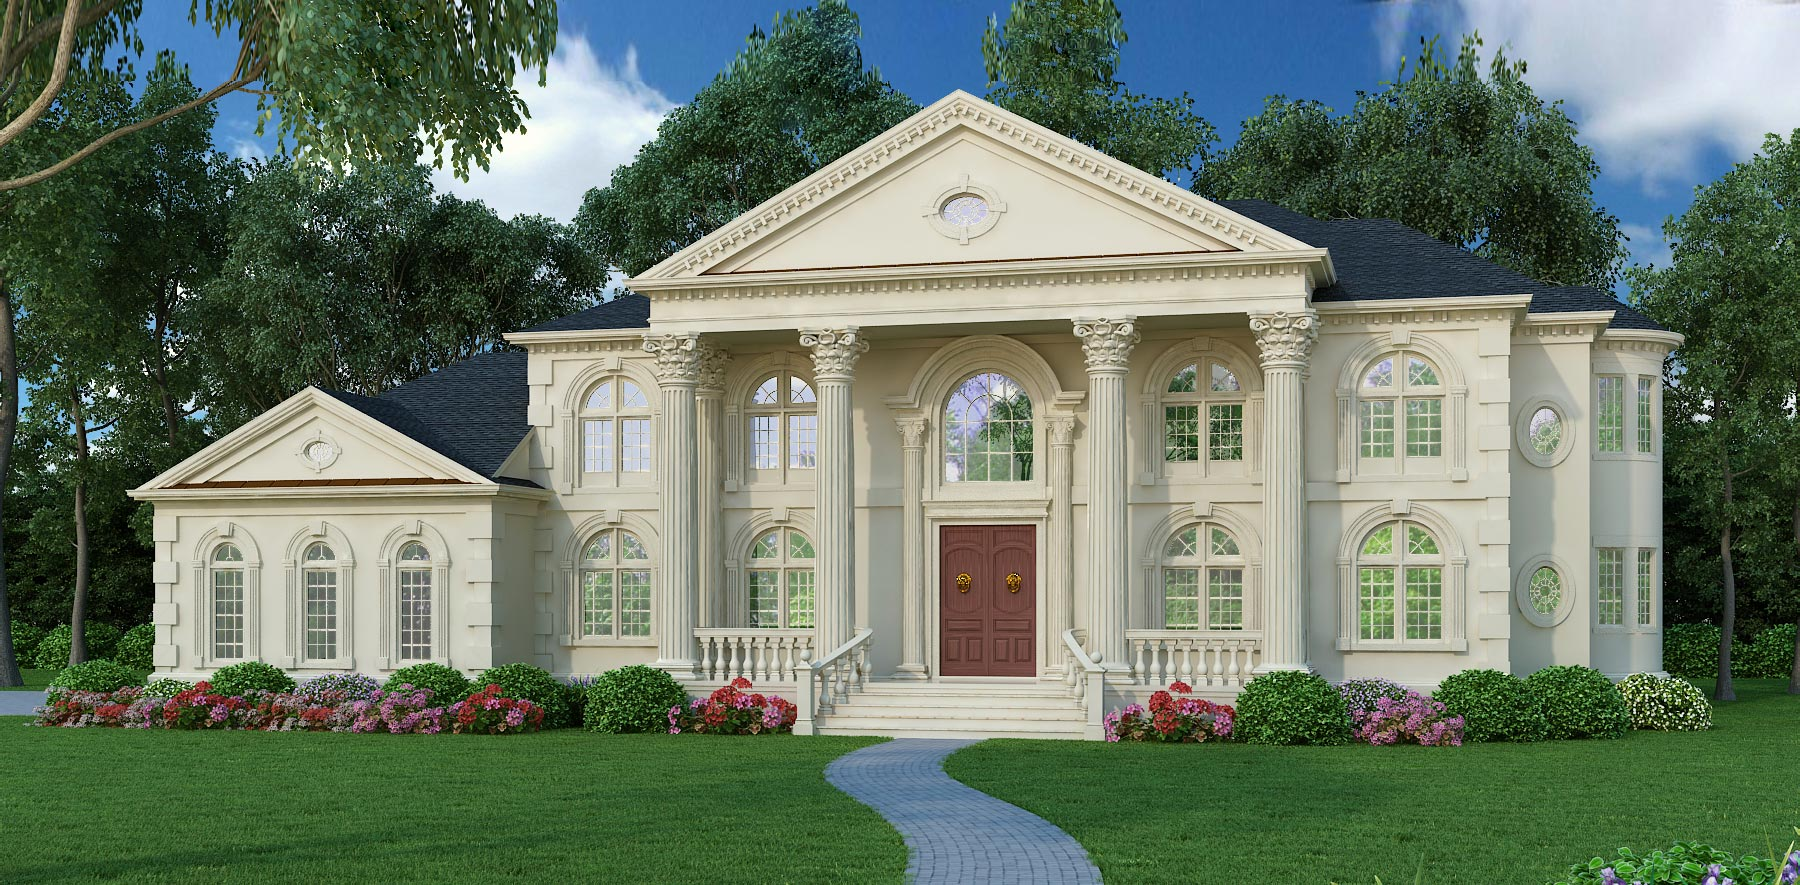 Colonial house plan 5 bedrms 4 5 baths 5699 sq ft for Palladian style house plans